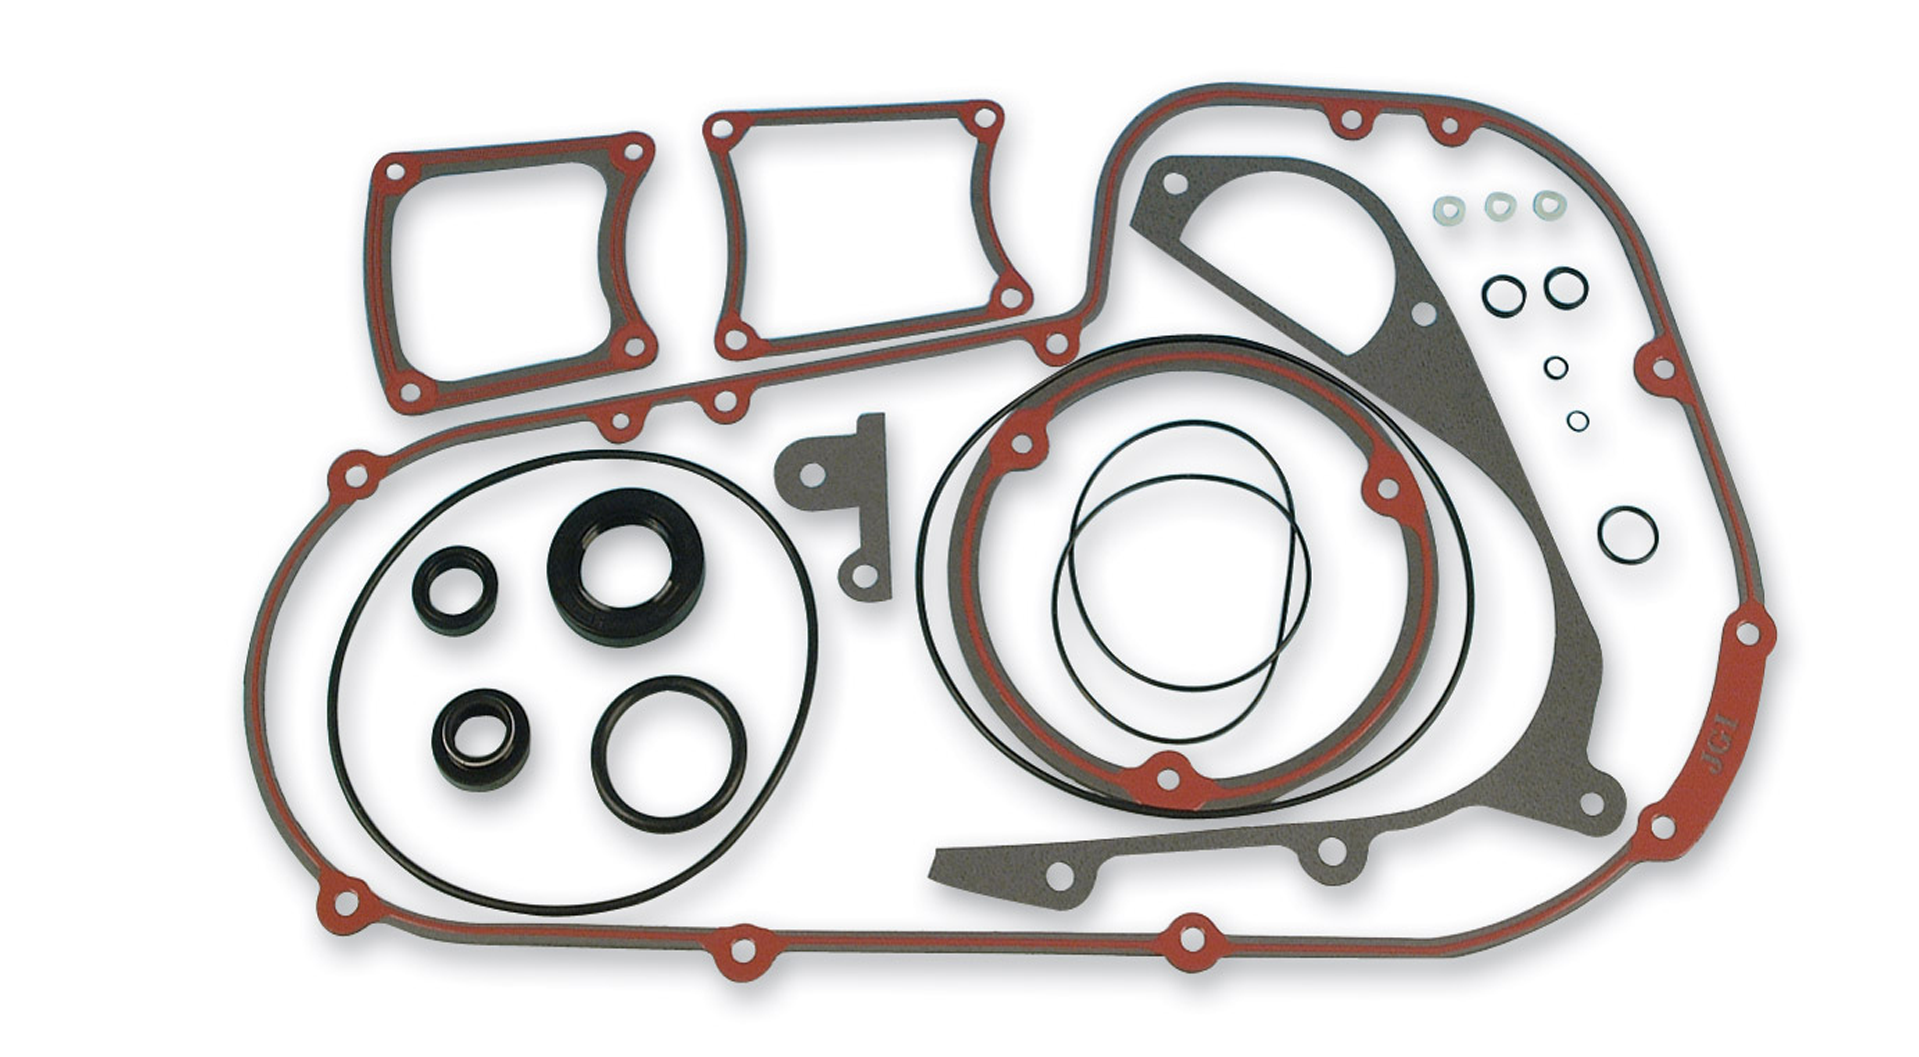 International Gasket and Seals Market 2020 – Key Vendors Landscape, Trends, Challenges, and Drivers, Analysis, & Forecast